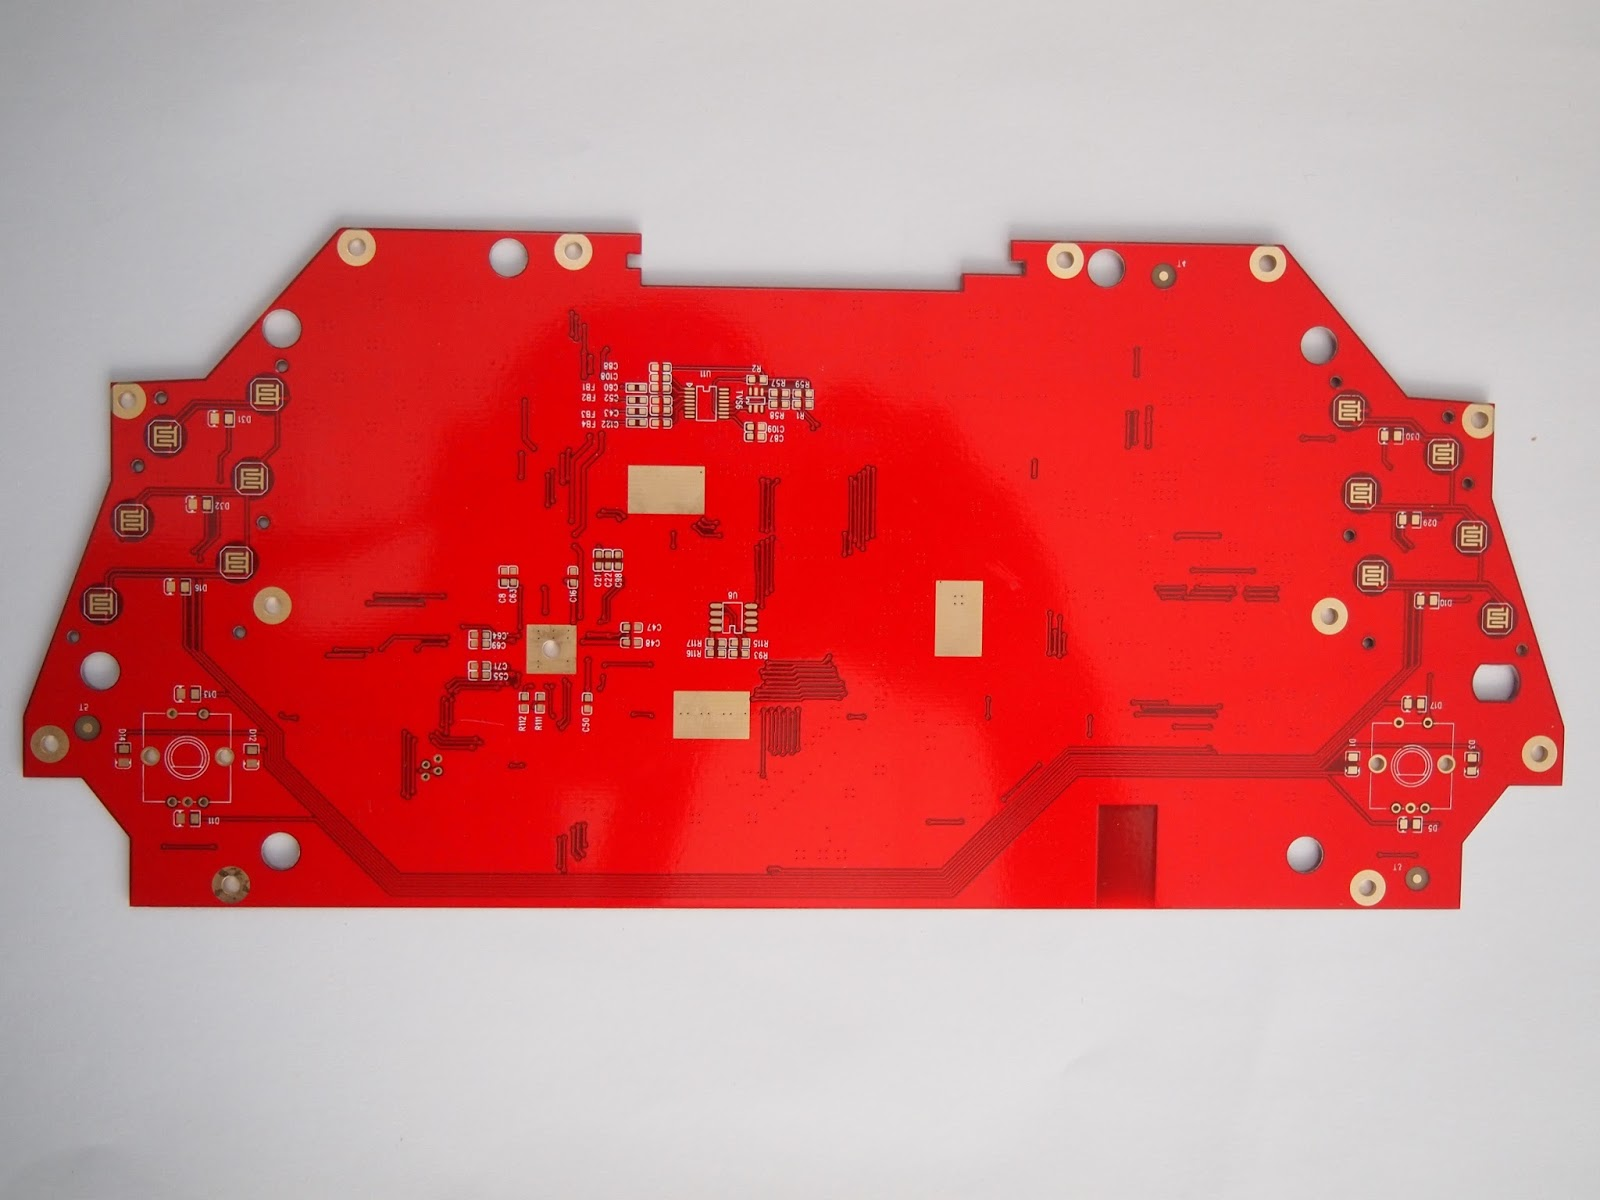 Dtpcb Hk Pcb Showcase 6 Layer Printed Circuit Boards Manufacturer In Board Maker For Micro Camera Buy 9th August 2015 Aken Zhang Automotive Print